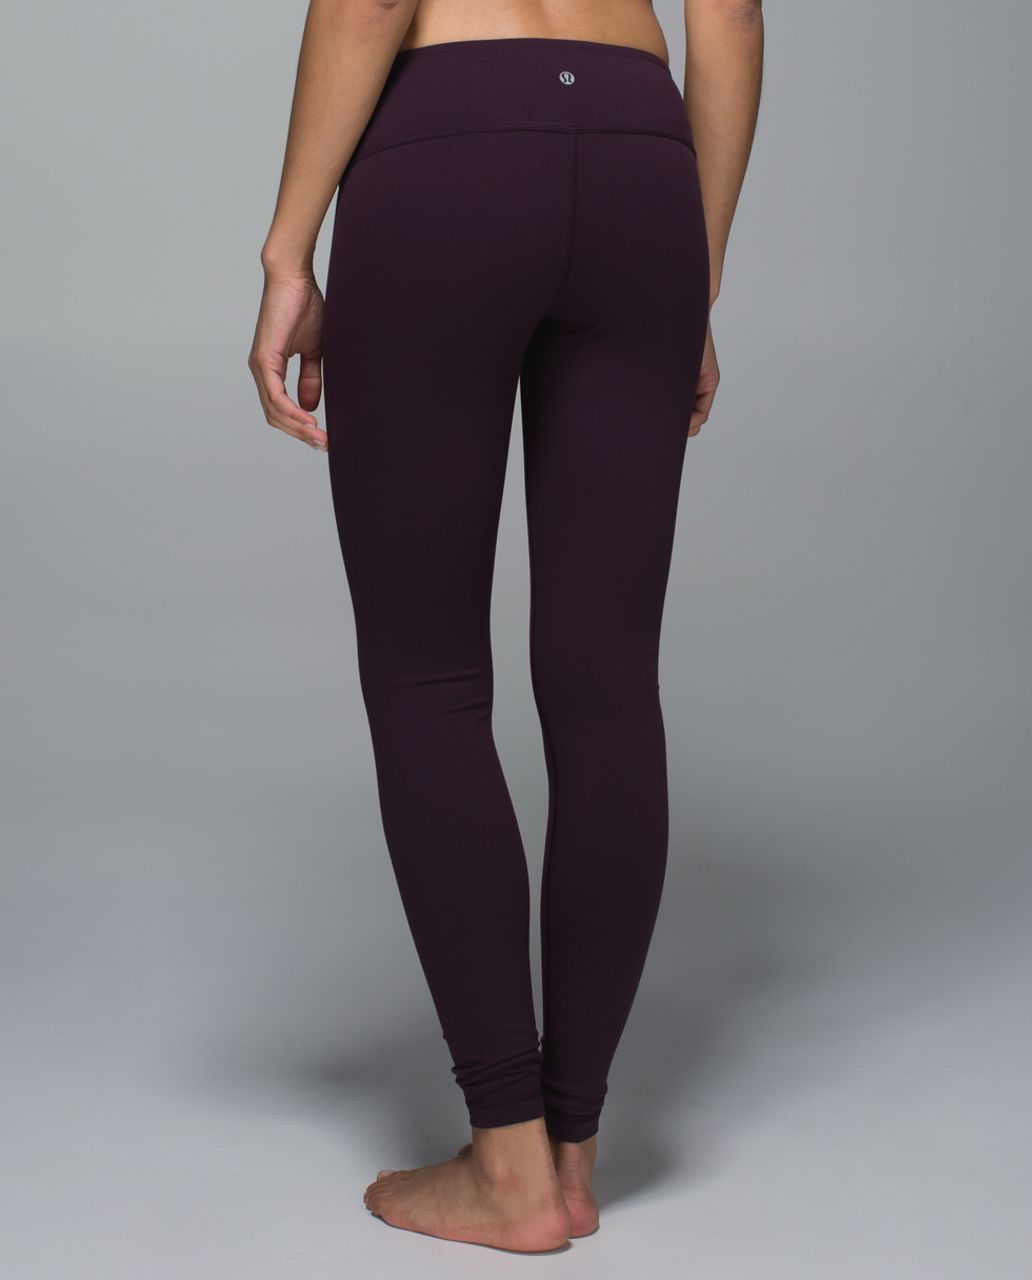 3da4b973b5 Lululemon Wunder Under Pant *Full-On Luon - Black Cherry / Star Crushed Black  Cherry Black - lulu fanatics